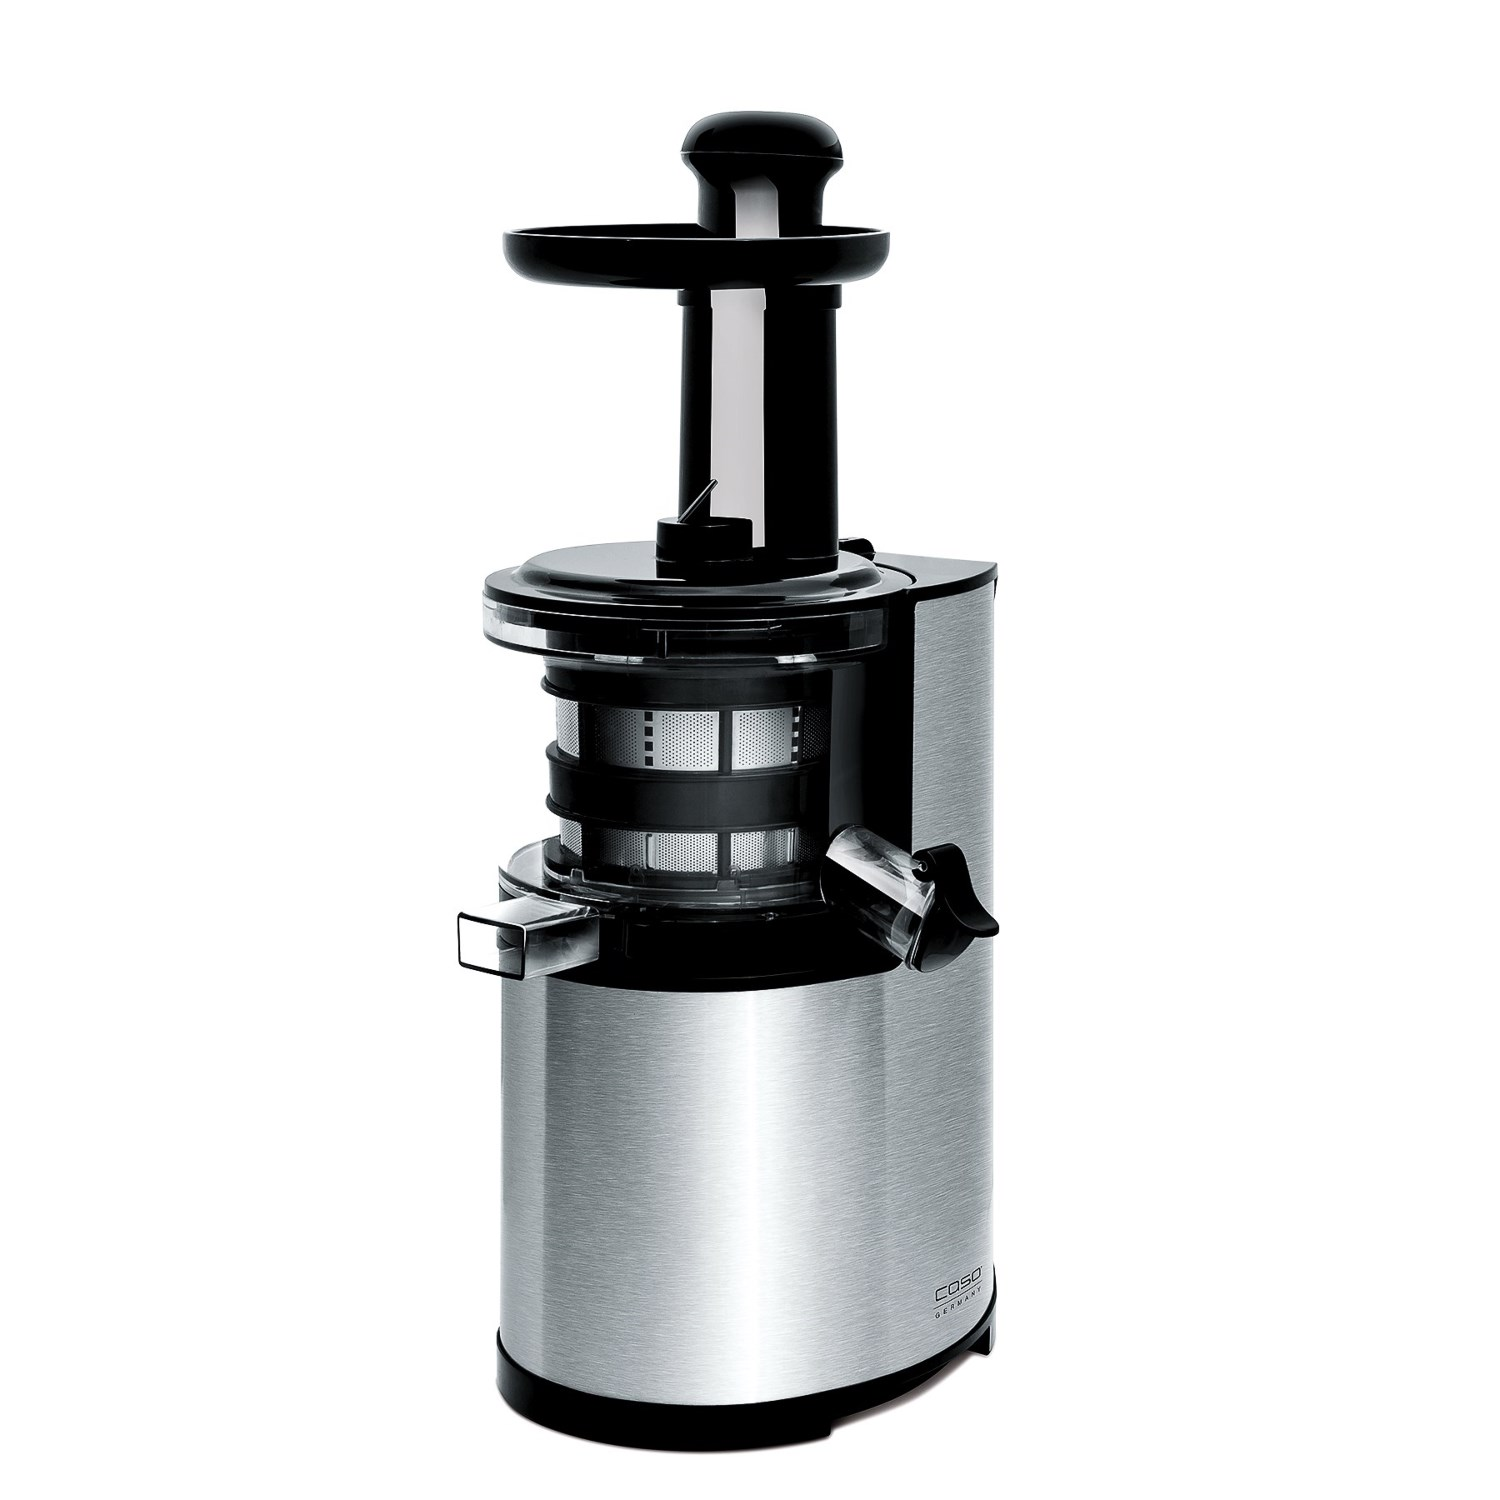 Caso Slow Juicer Review : CASO SJ 200 Slow Juicer - Stainless Steel, 200-Watt - Save 49%